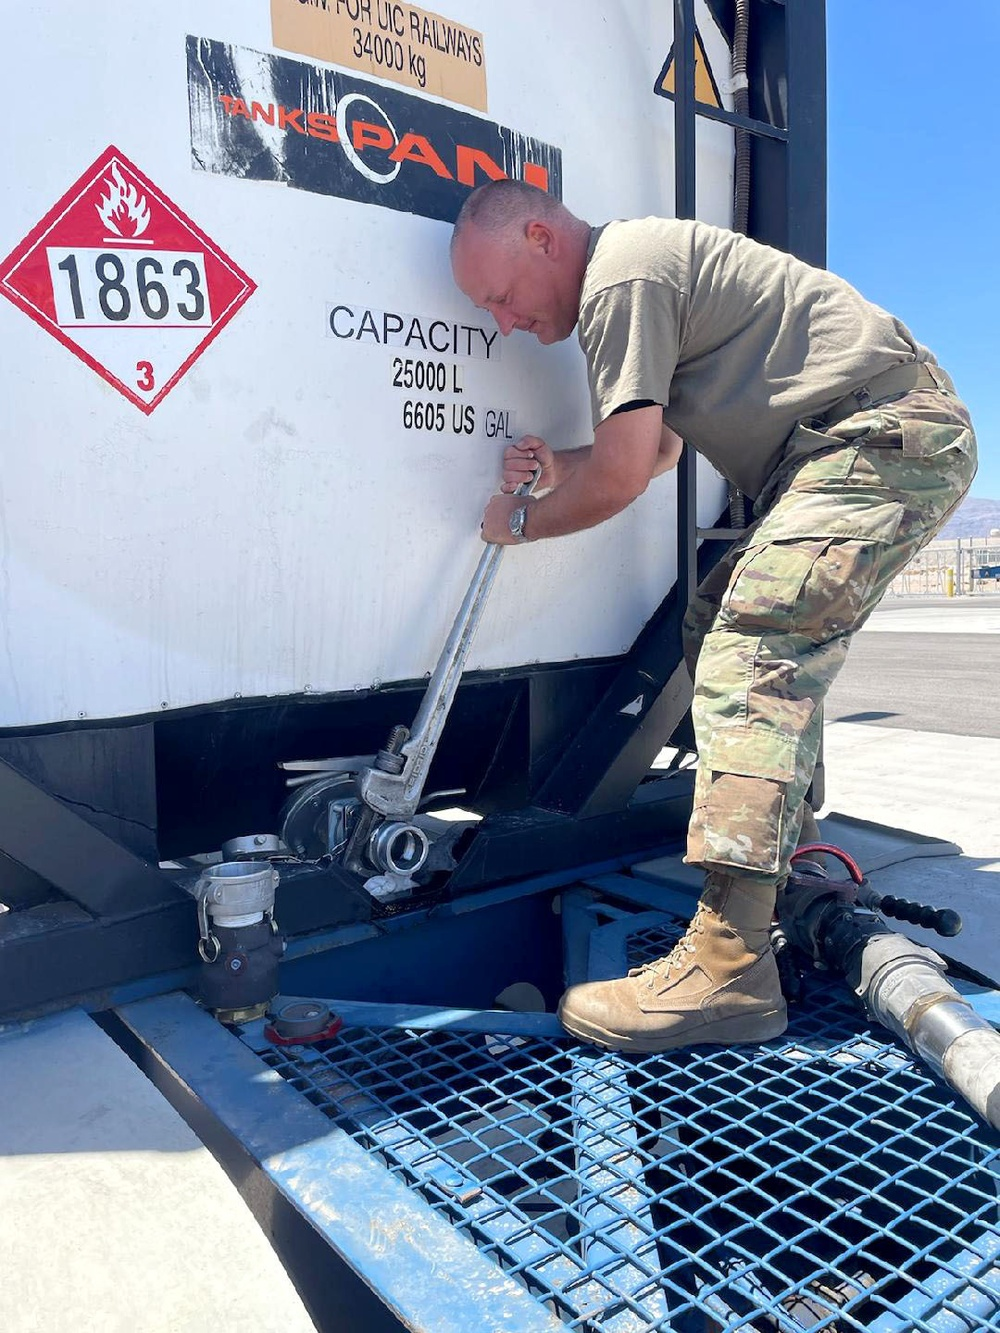 403rd LRS thrives at Nellis